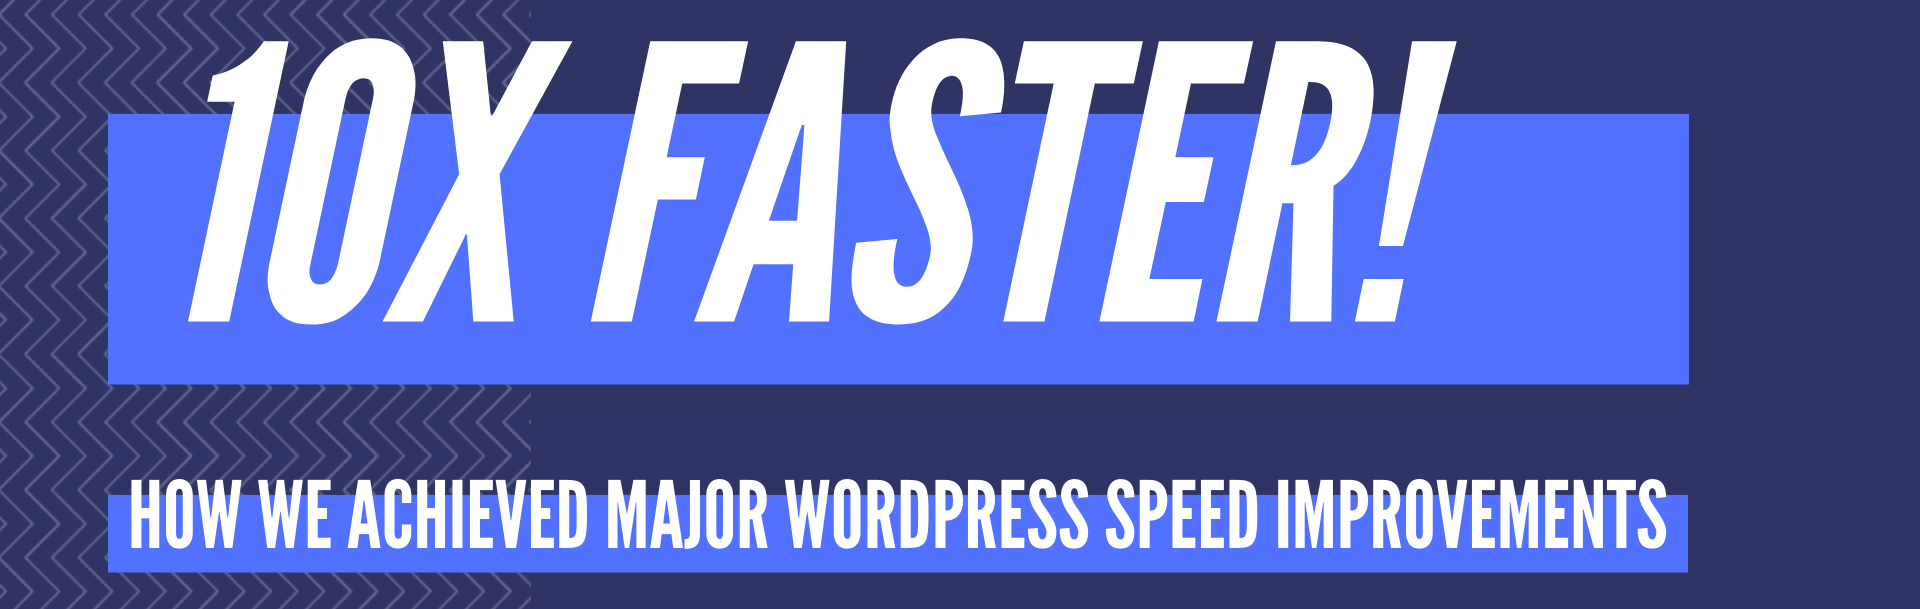 how we achieived 10 faster wordpress results